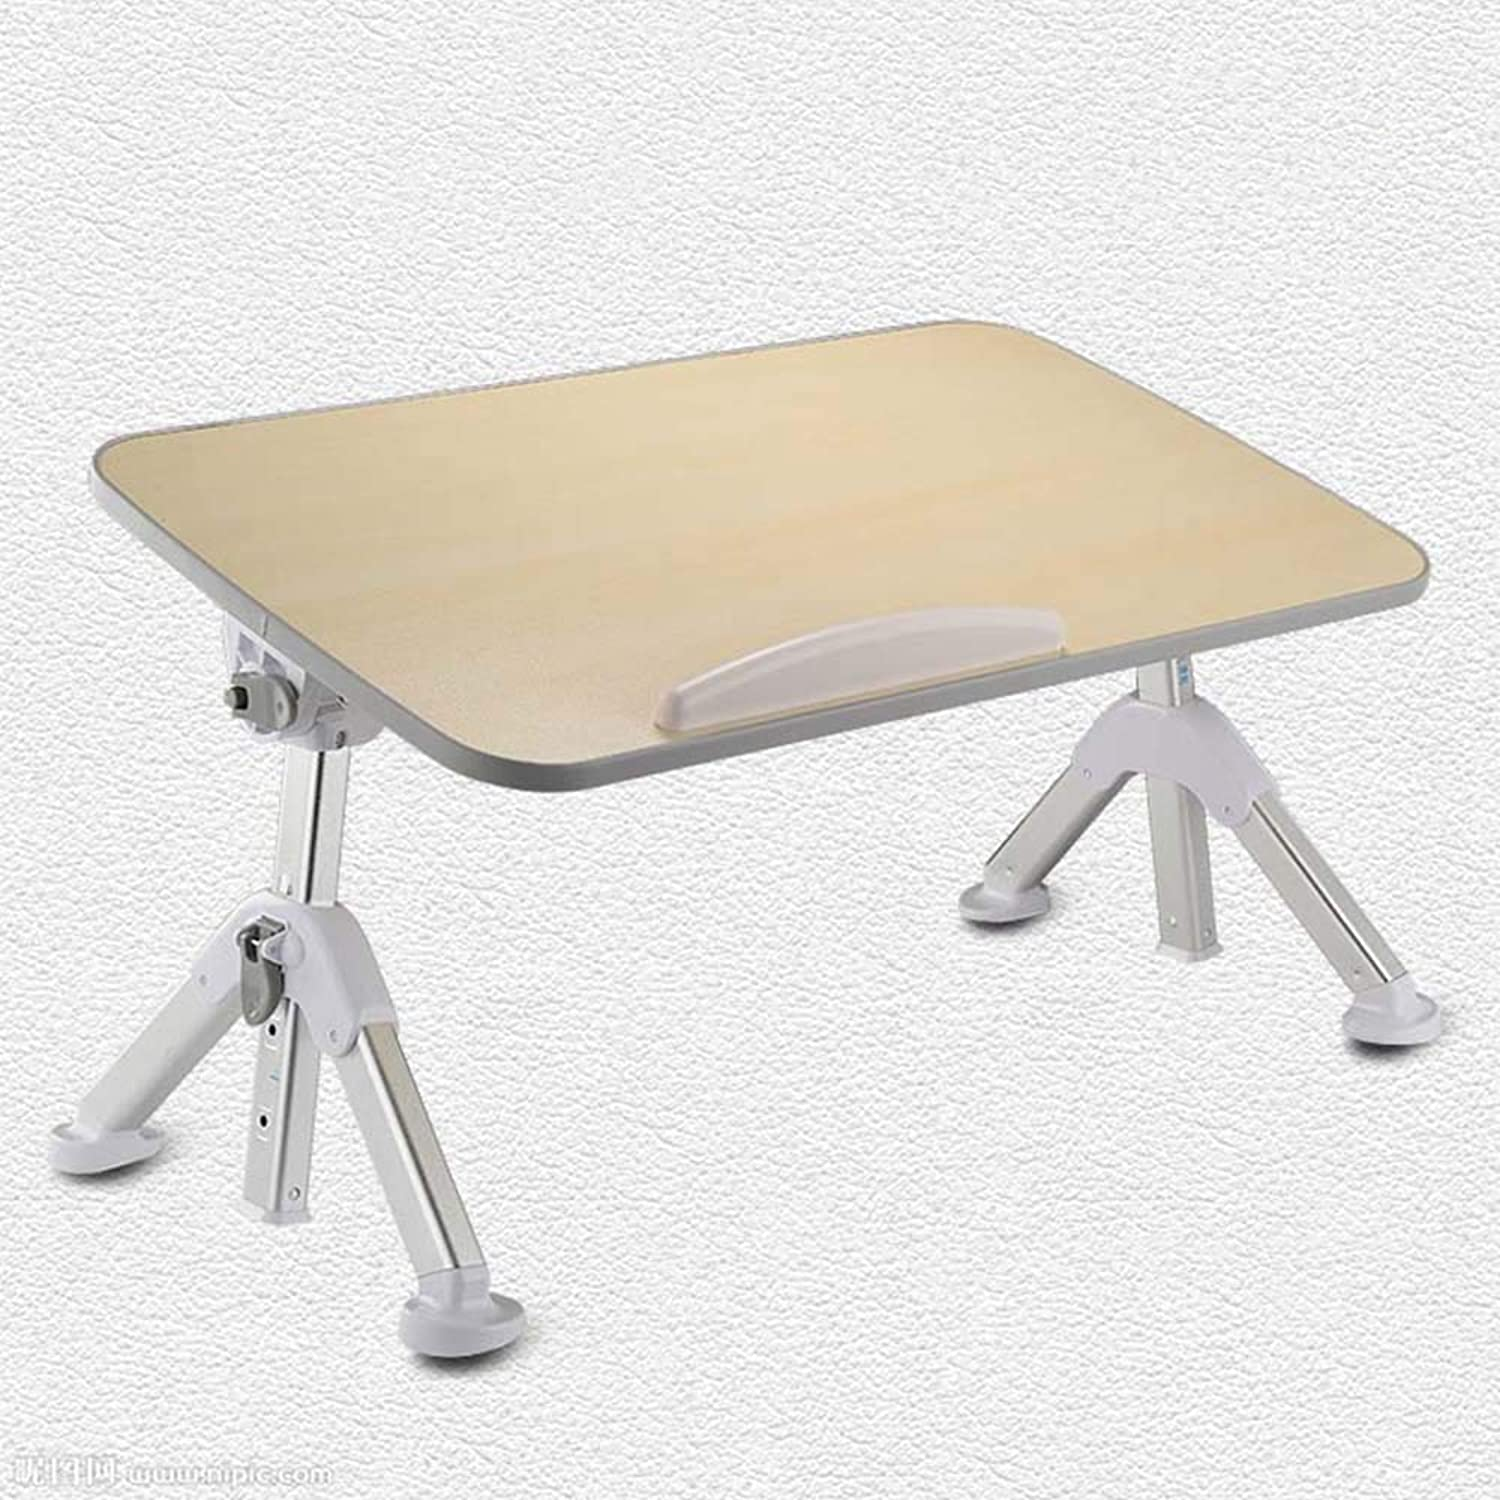 Nightstand Side Table, Bed Small Table Student Dormitory Folding Table, Computer Desk Lazy Board Table Lifting Bedroom Desk, Foldable Table, for Adult Student 4 colors, 3 Sizes End Table